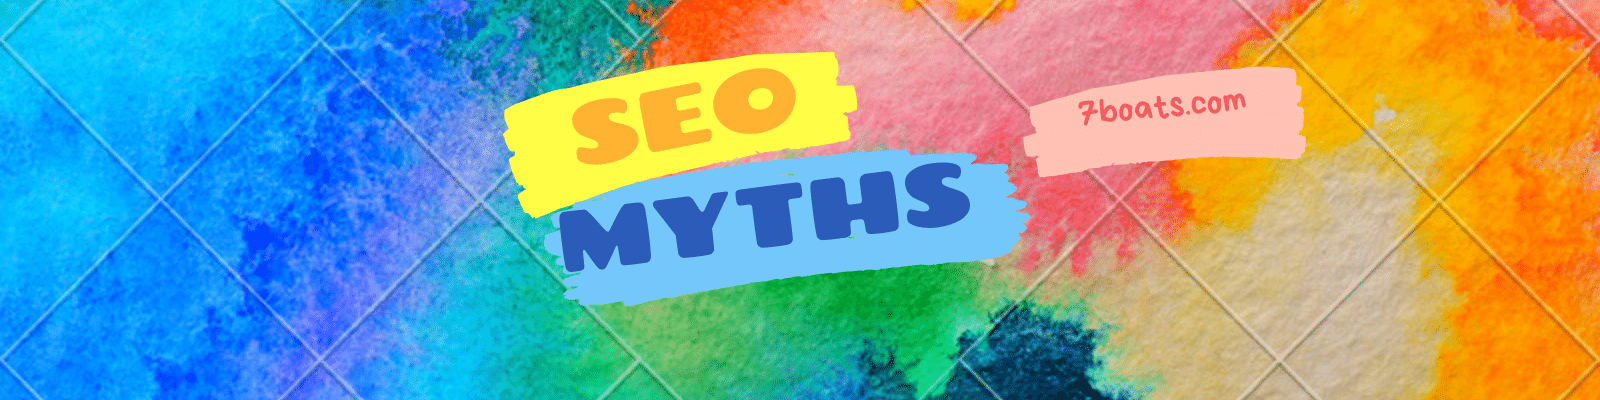 SEO myths you should never follow